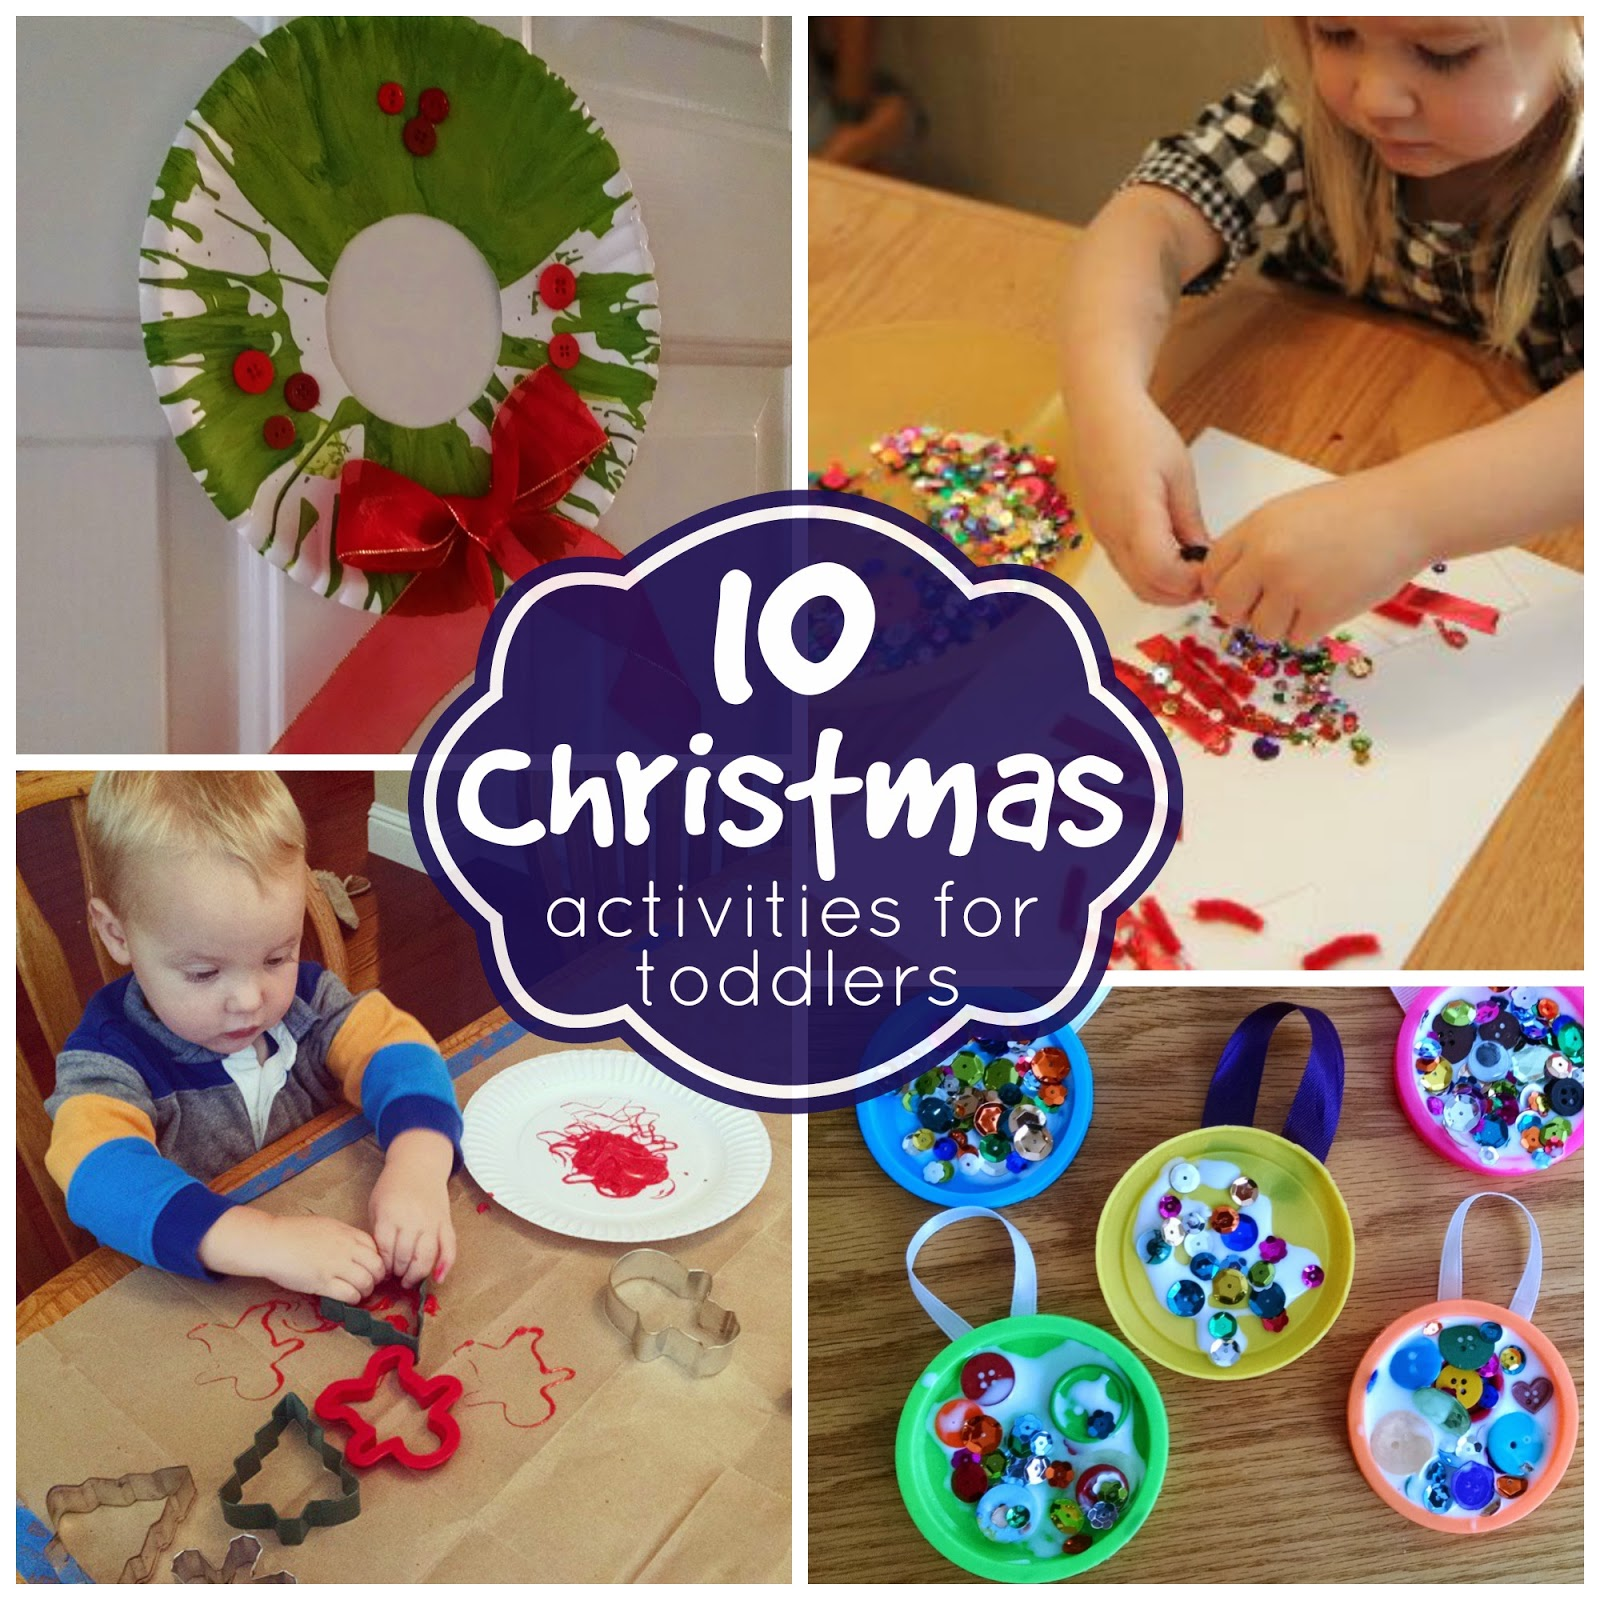 Toddler Approved 10 Simple Christmas Activities For Toddlers